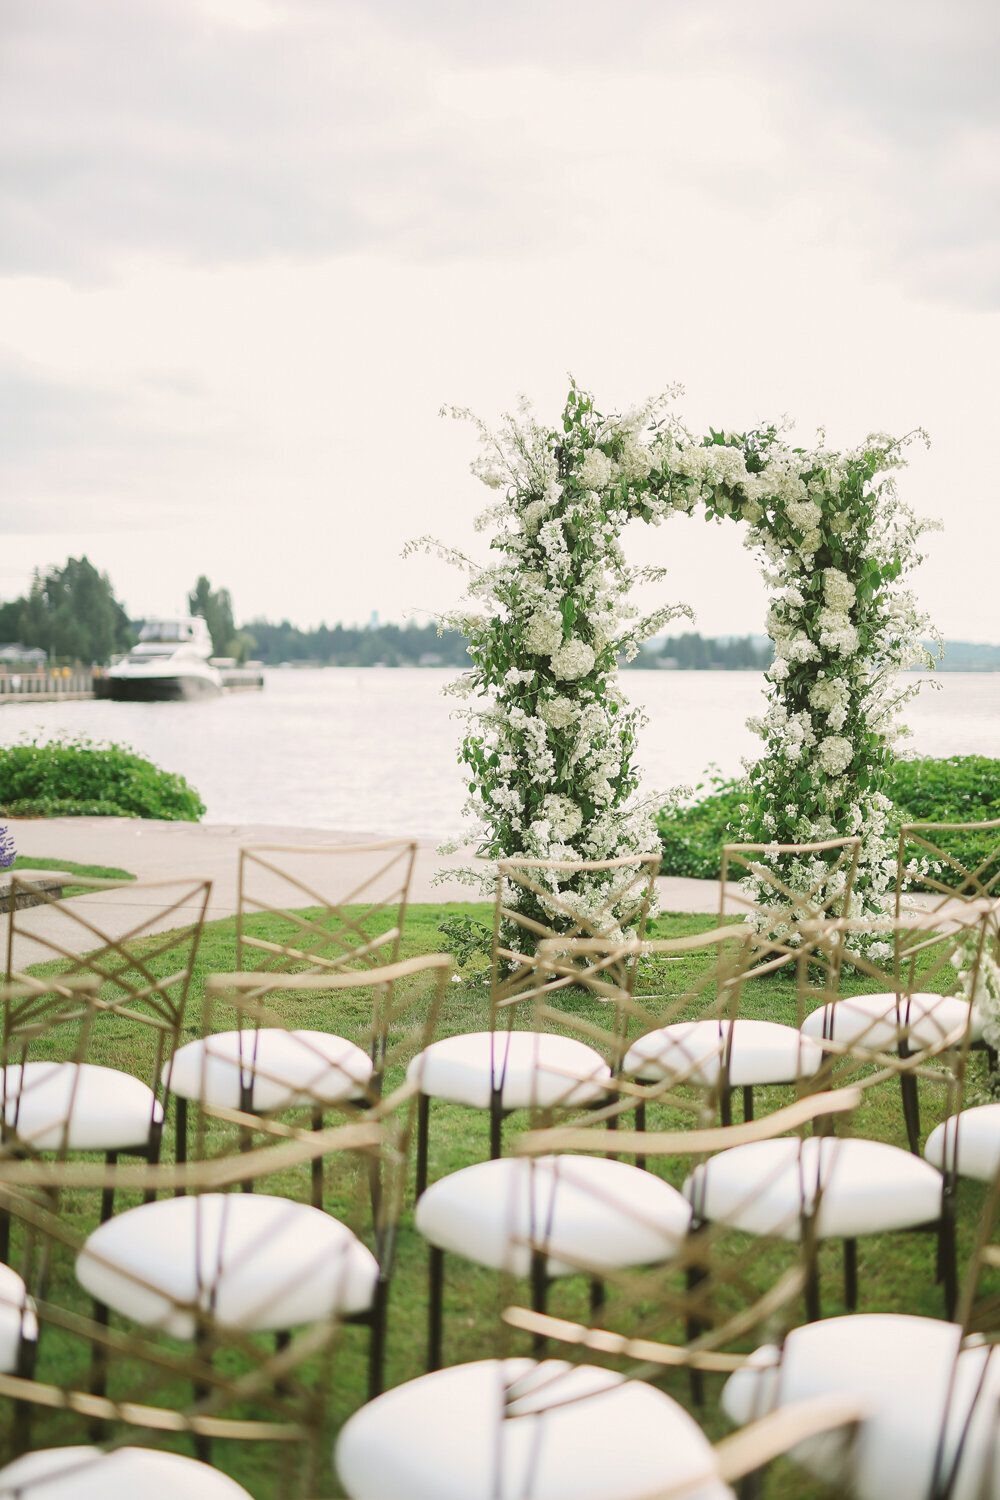 Kirkland-washington-wedding-planner-leigh-and-mitchell-waterfront-wedding-white-ceremony-arbor